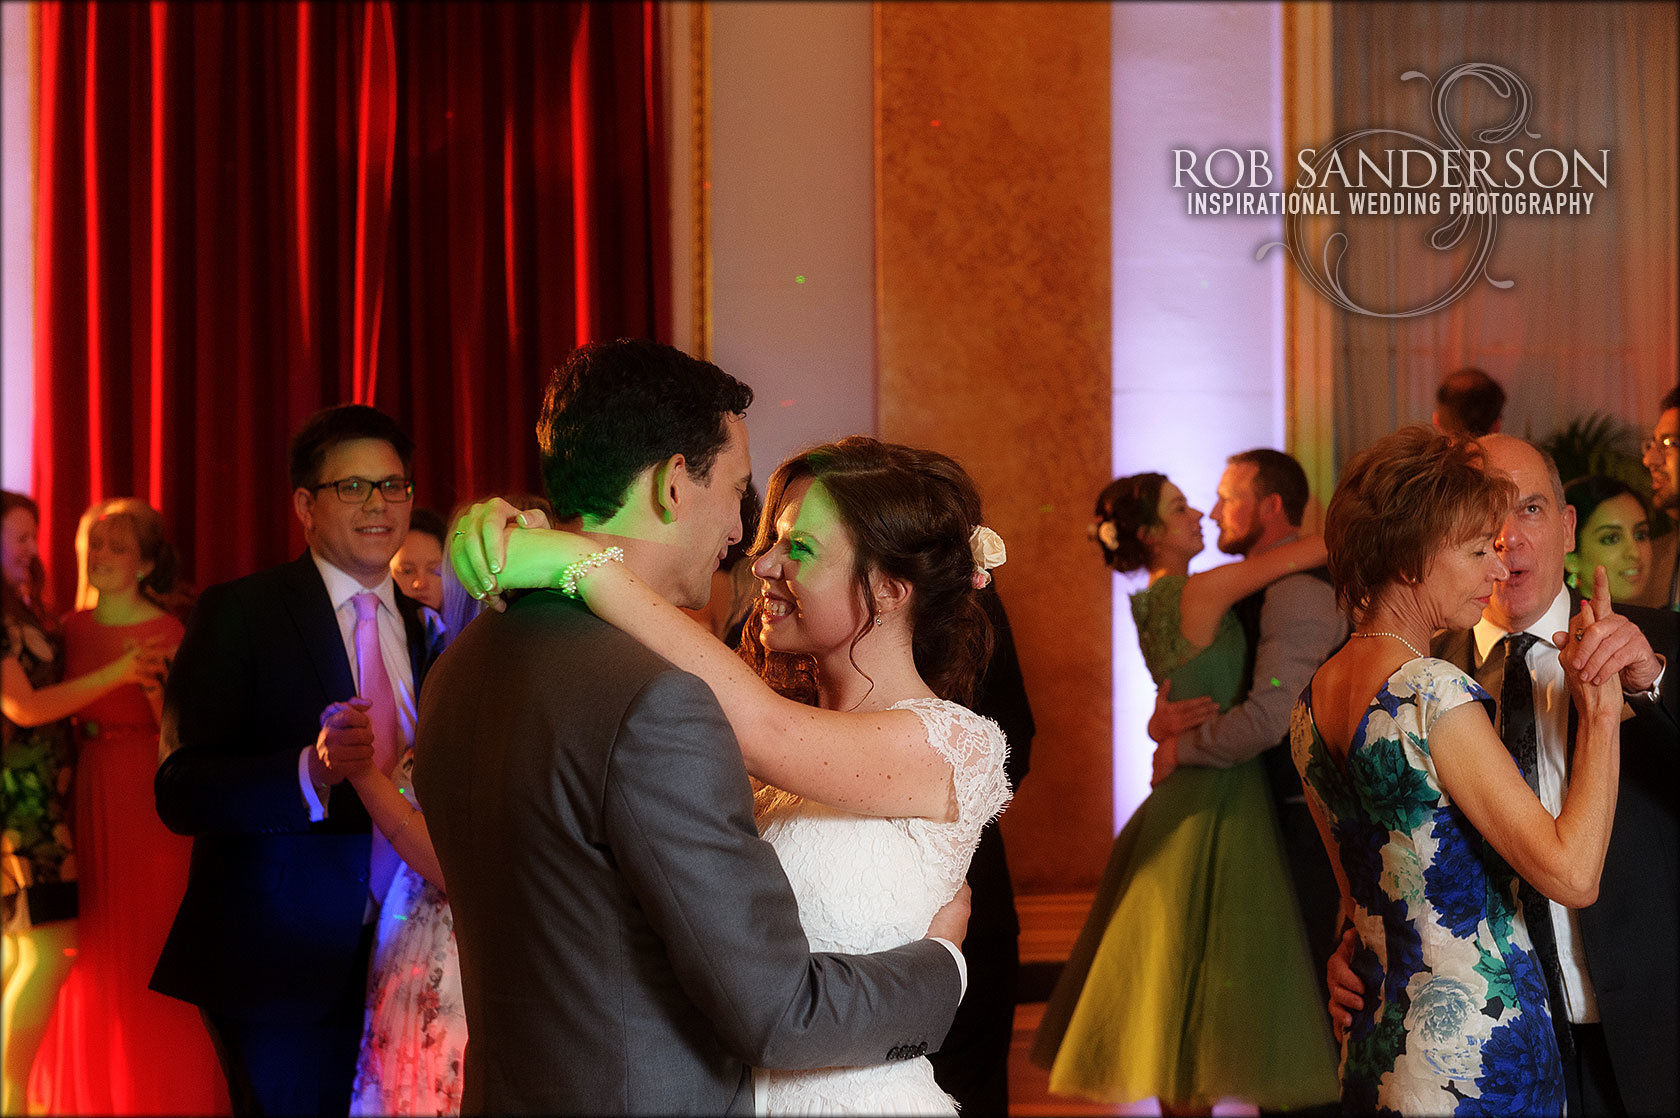 the first dance in the Town Hall ballroom